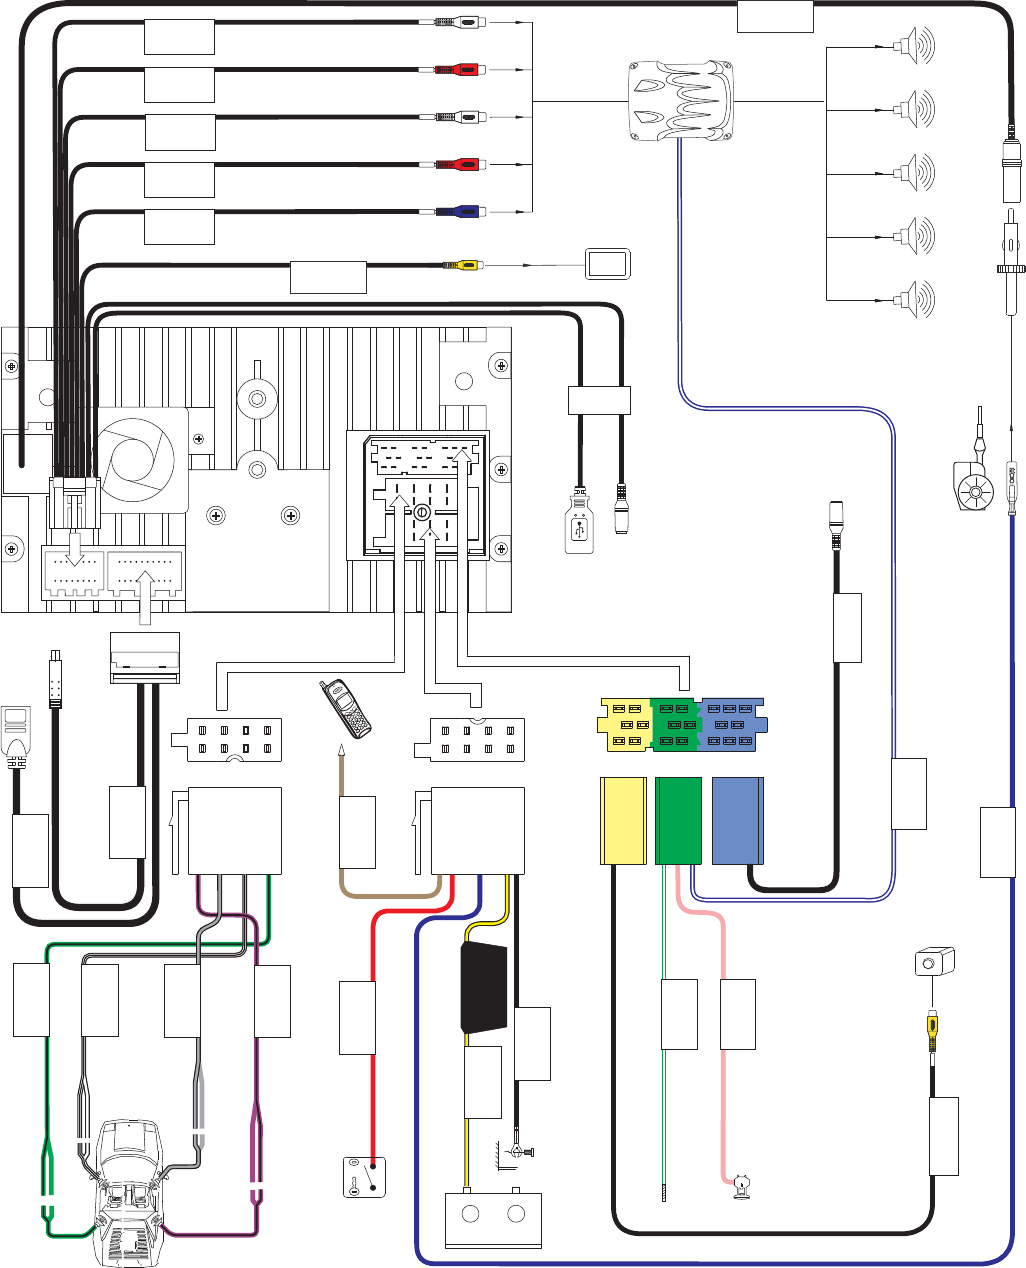 34fbcac4 7bef 4eb8 b34c 690a937048d0 bg4 jensen uv9 wiring diagram audio control wiring diagram \u2022 wiring  at crackthecode.co